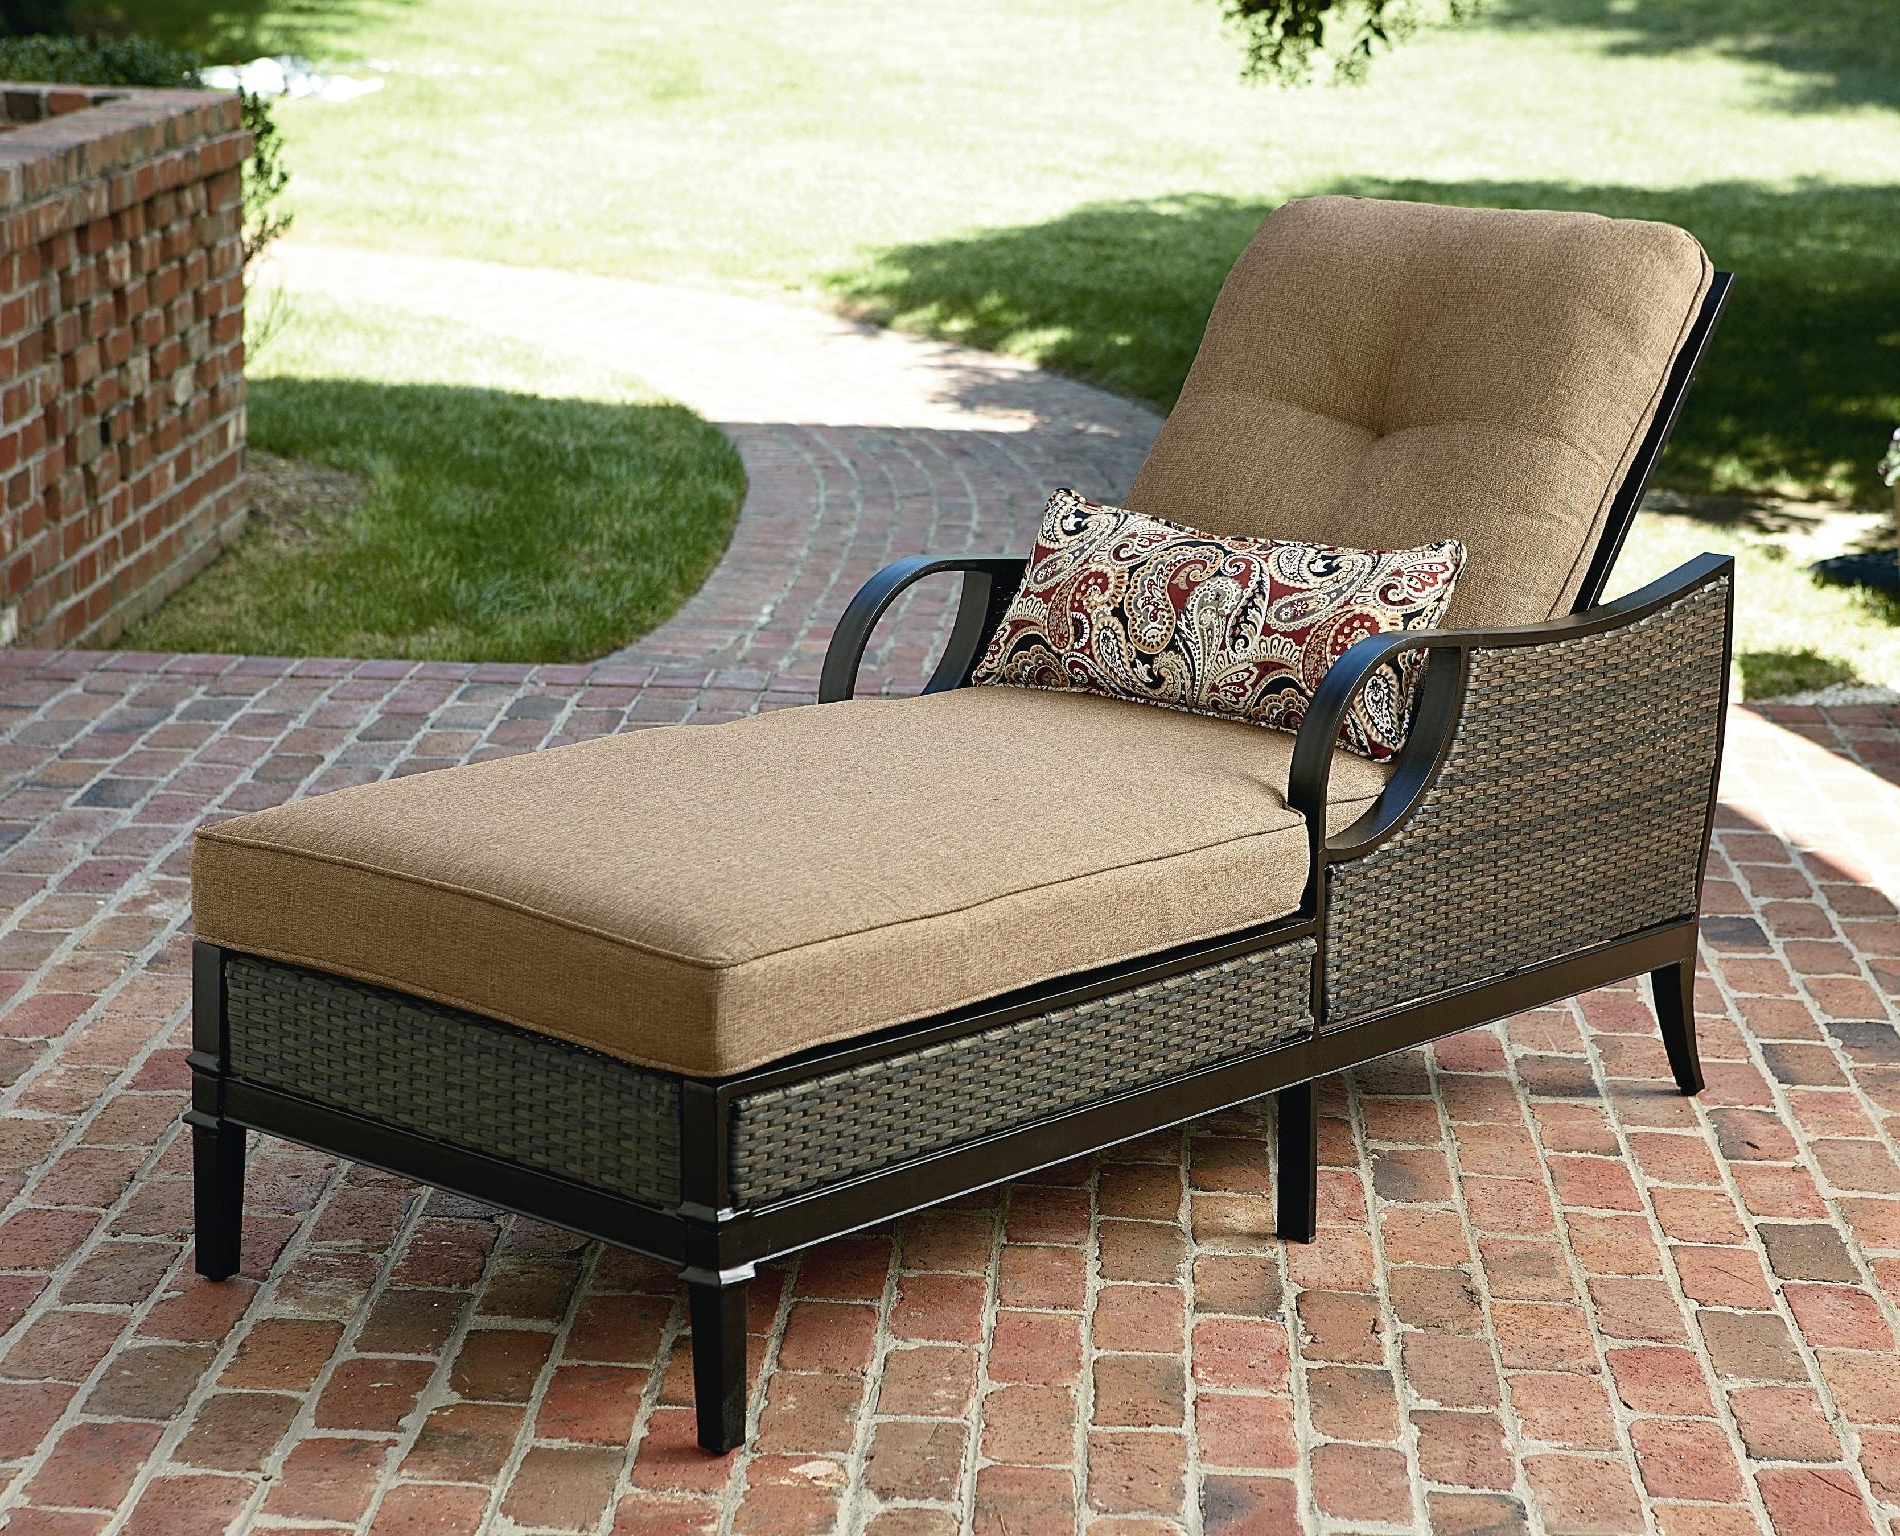 Well Liked Chaise Lounge Patio Chairs Inside Patio Furniture Chaise Lounge Chairs • Lounge Chairs Ideas (View 3 of 15)